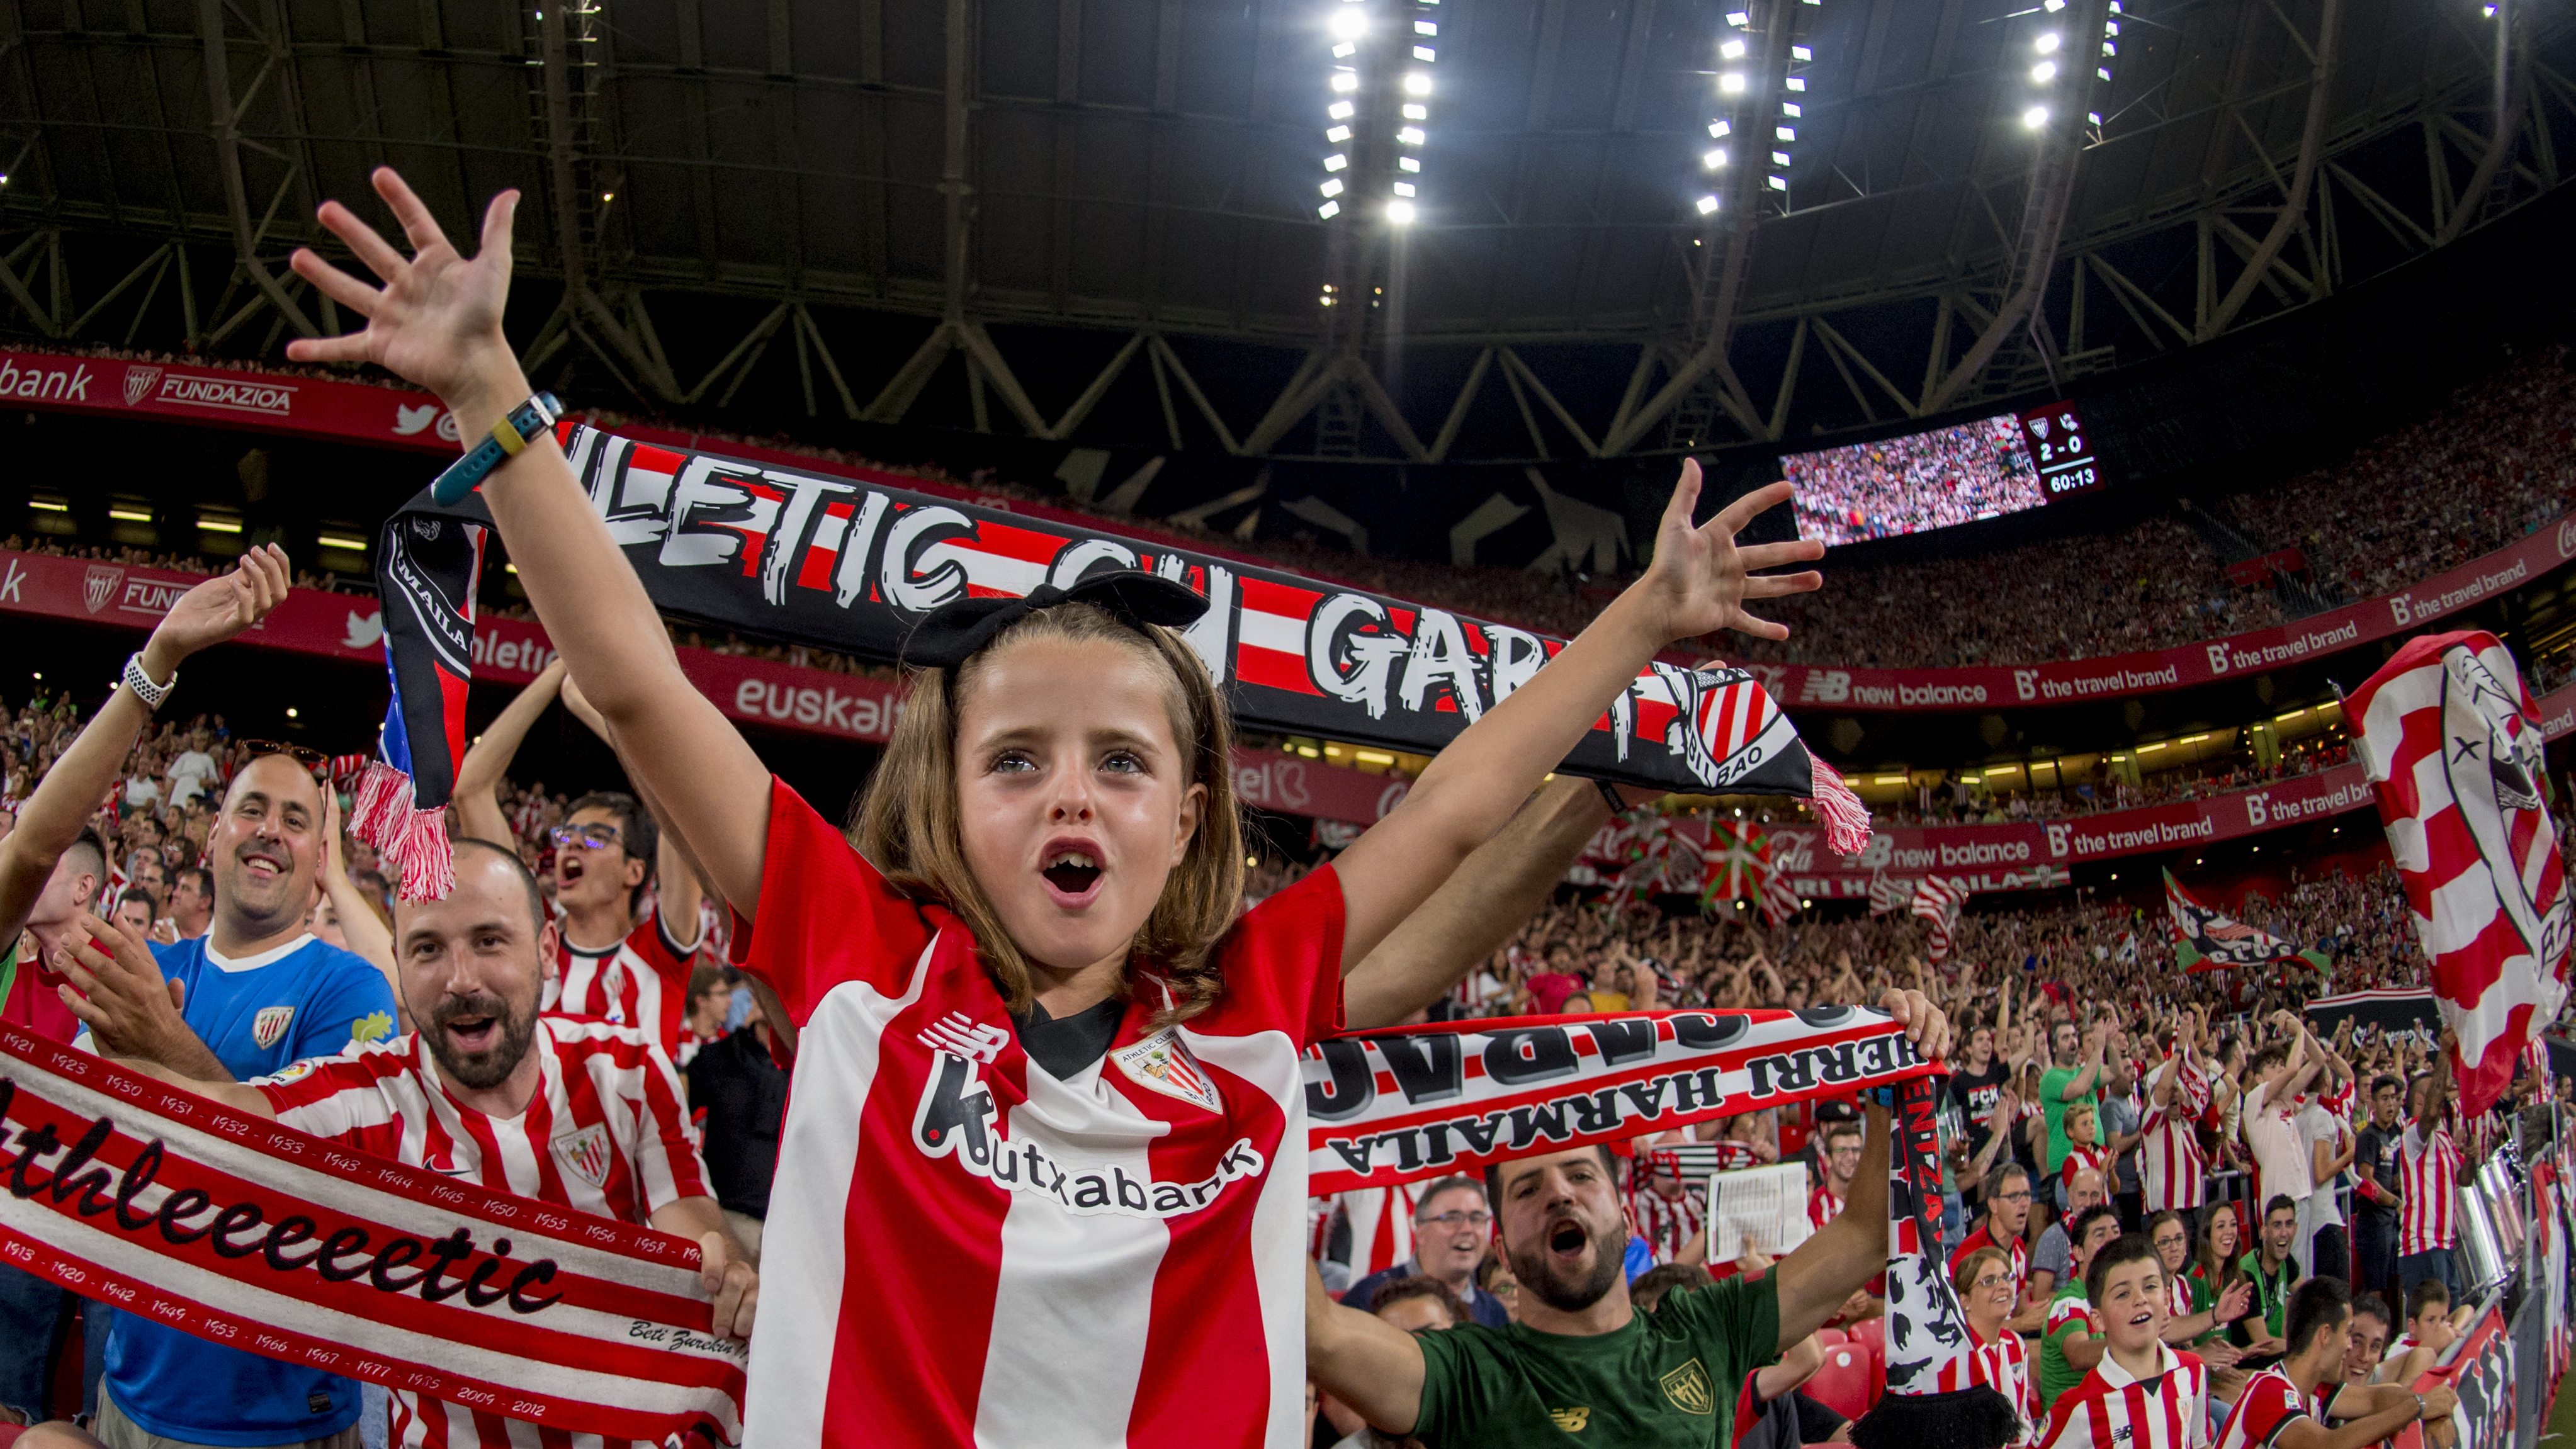 Tickets for minors accompanied by members for the match against Alavés